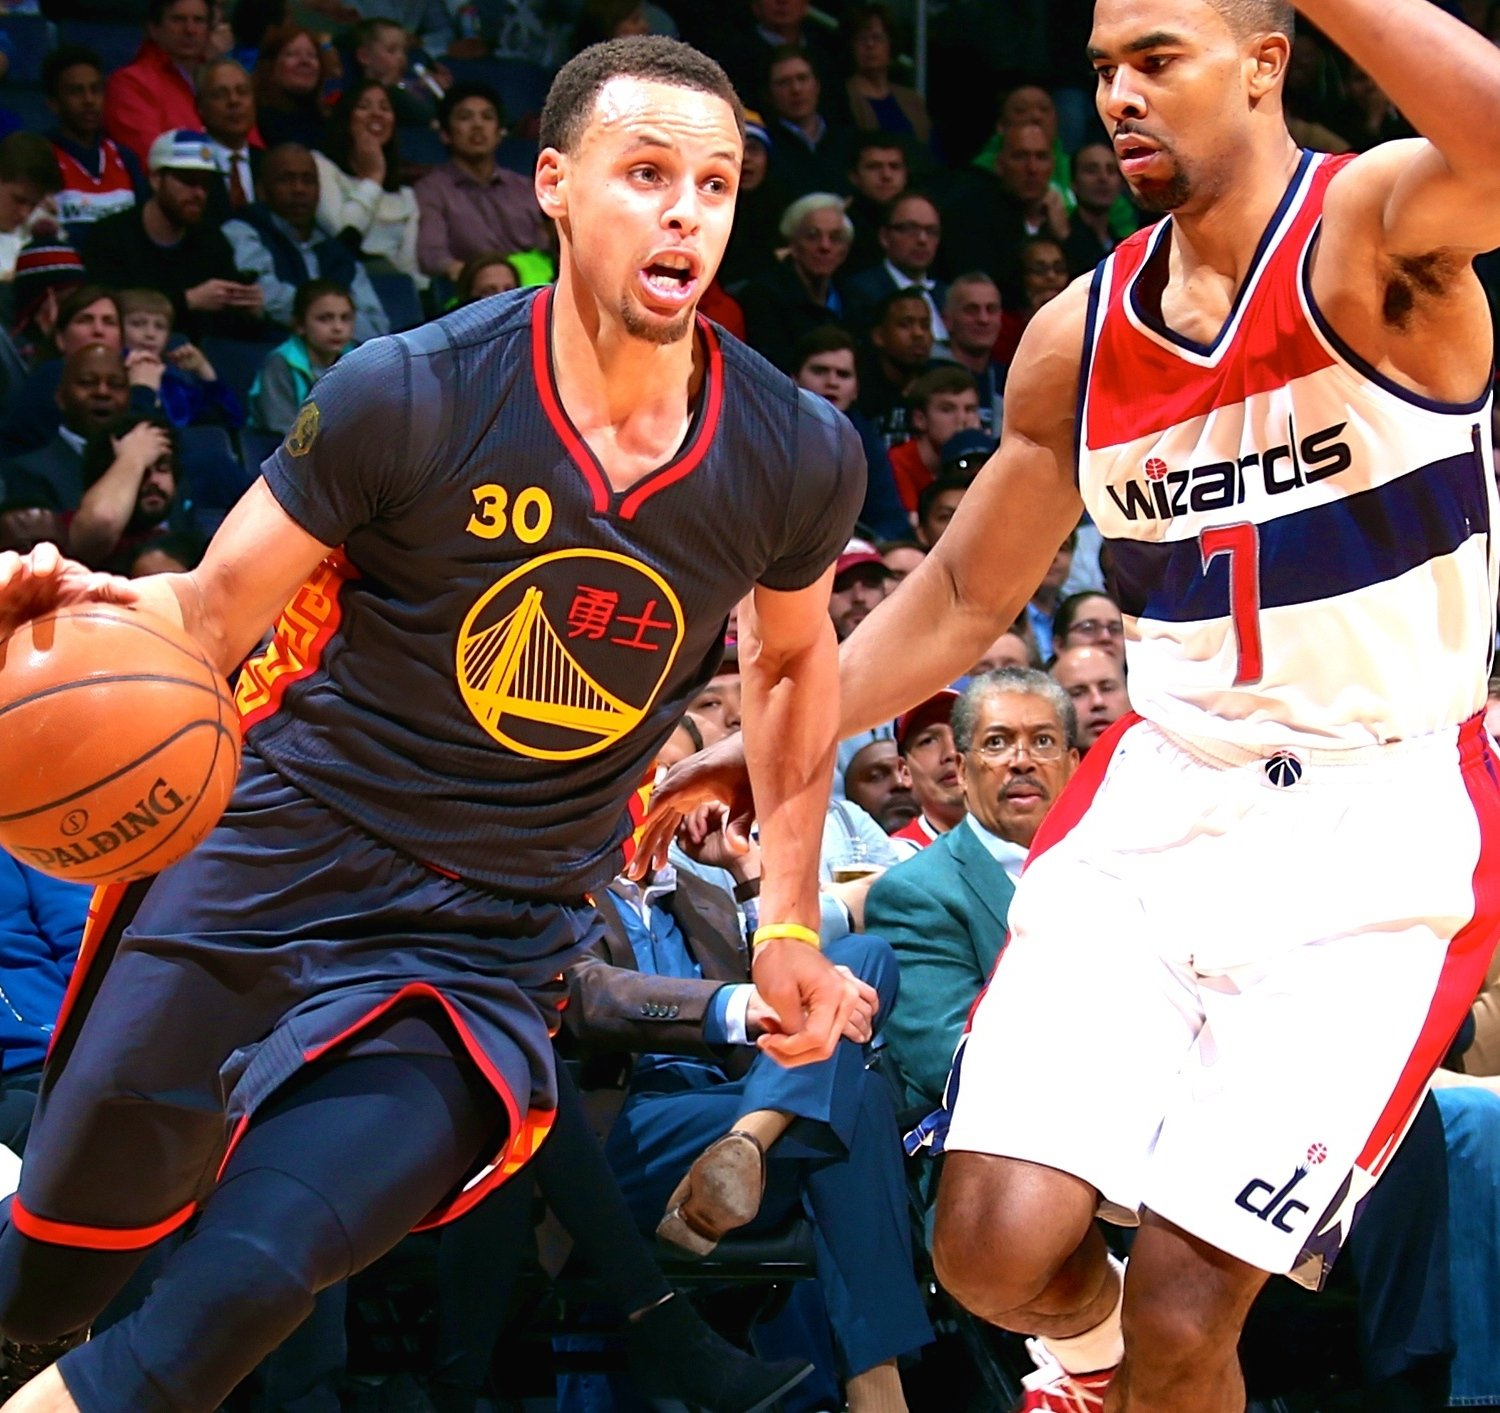 Warriors Vs Wizards Full Game Highlights